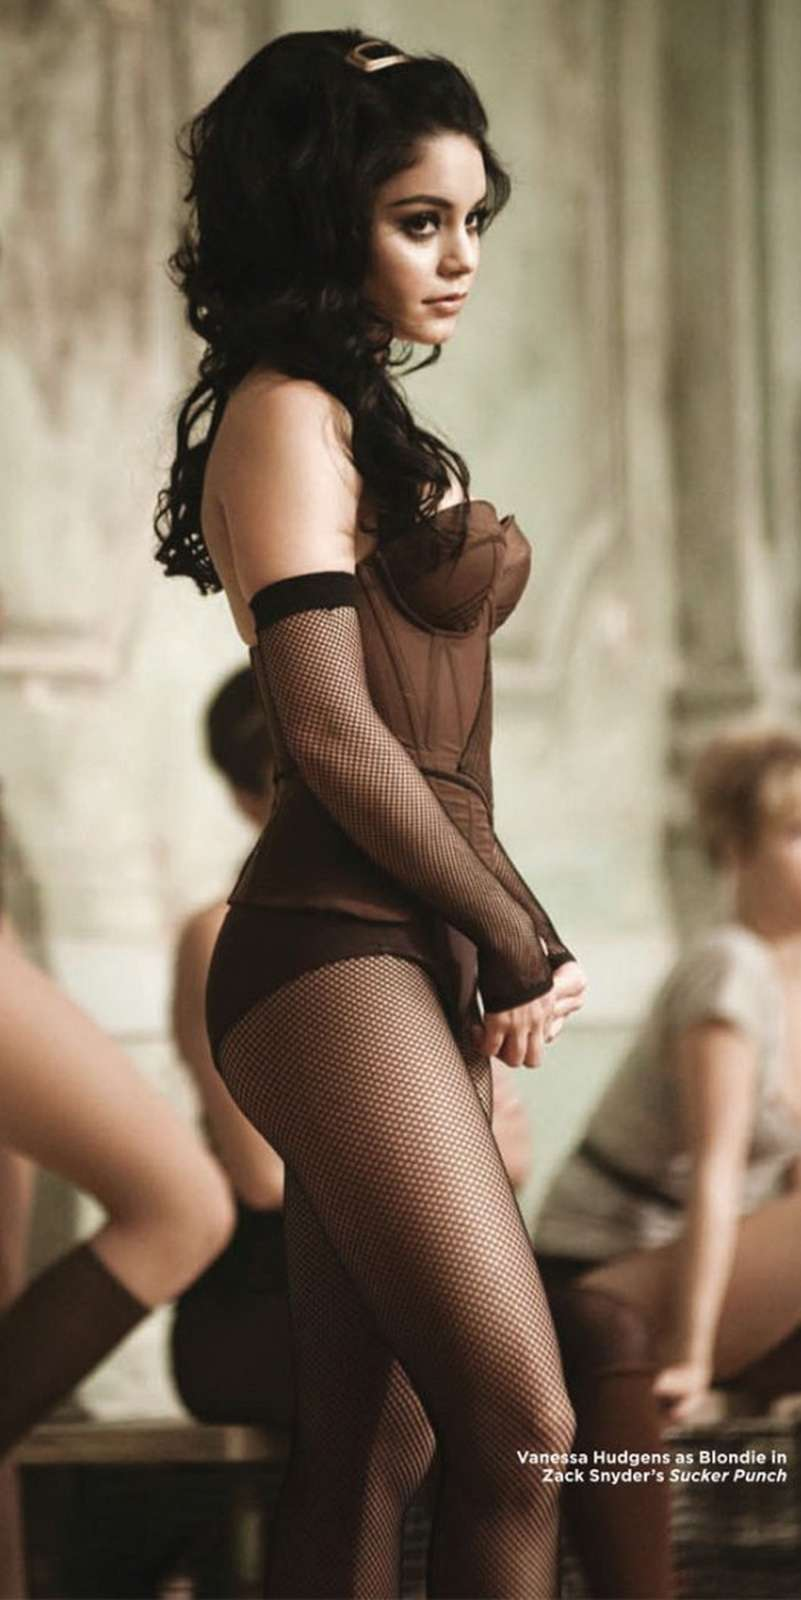 vanessa hudgens hot nude photos